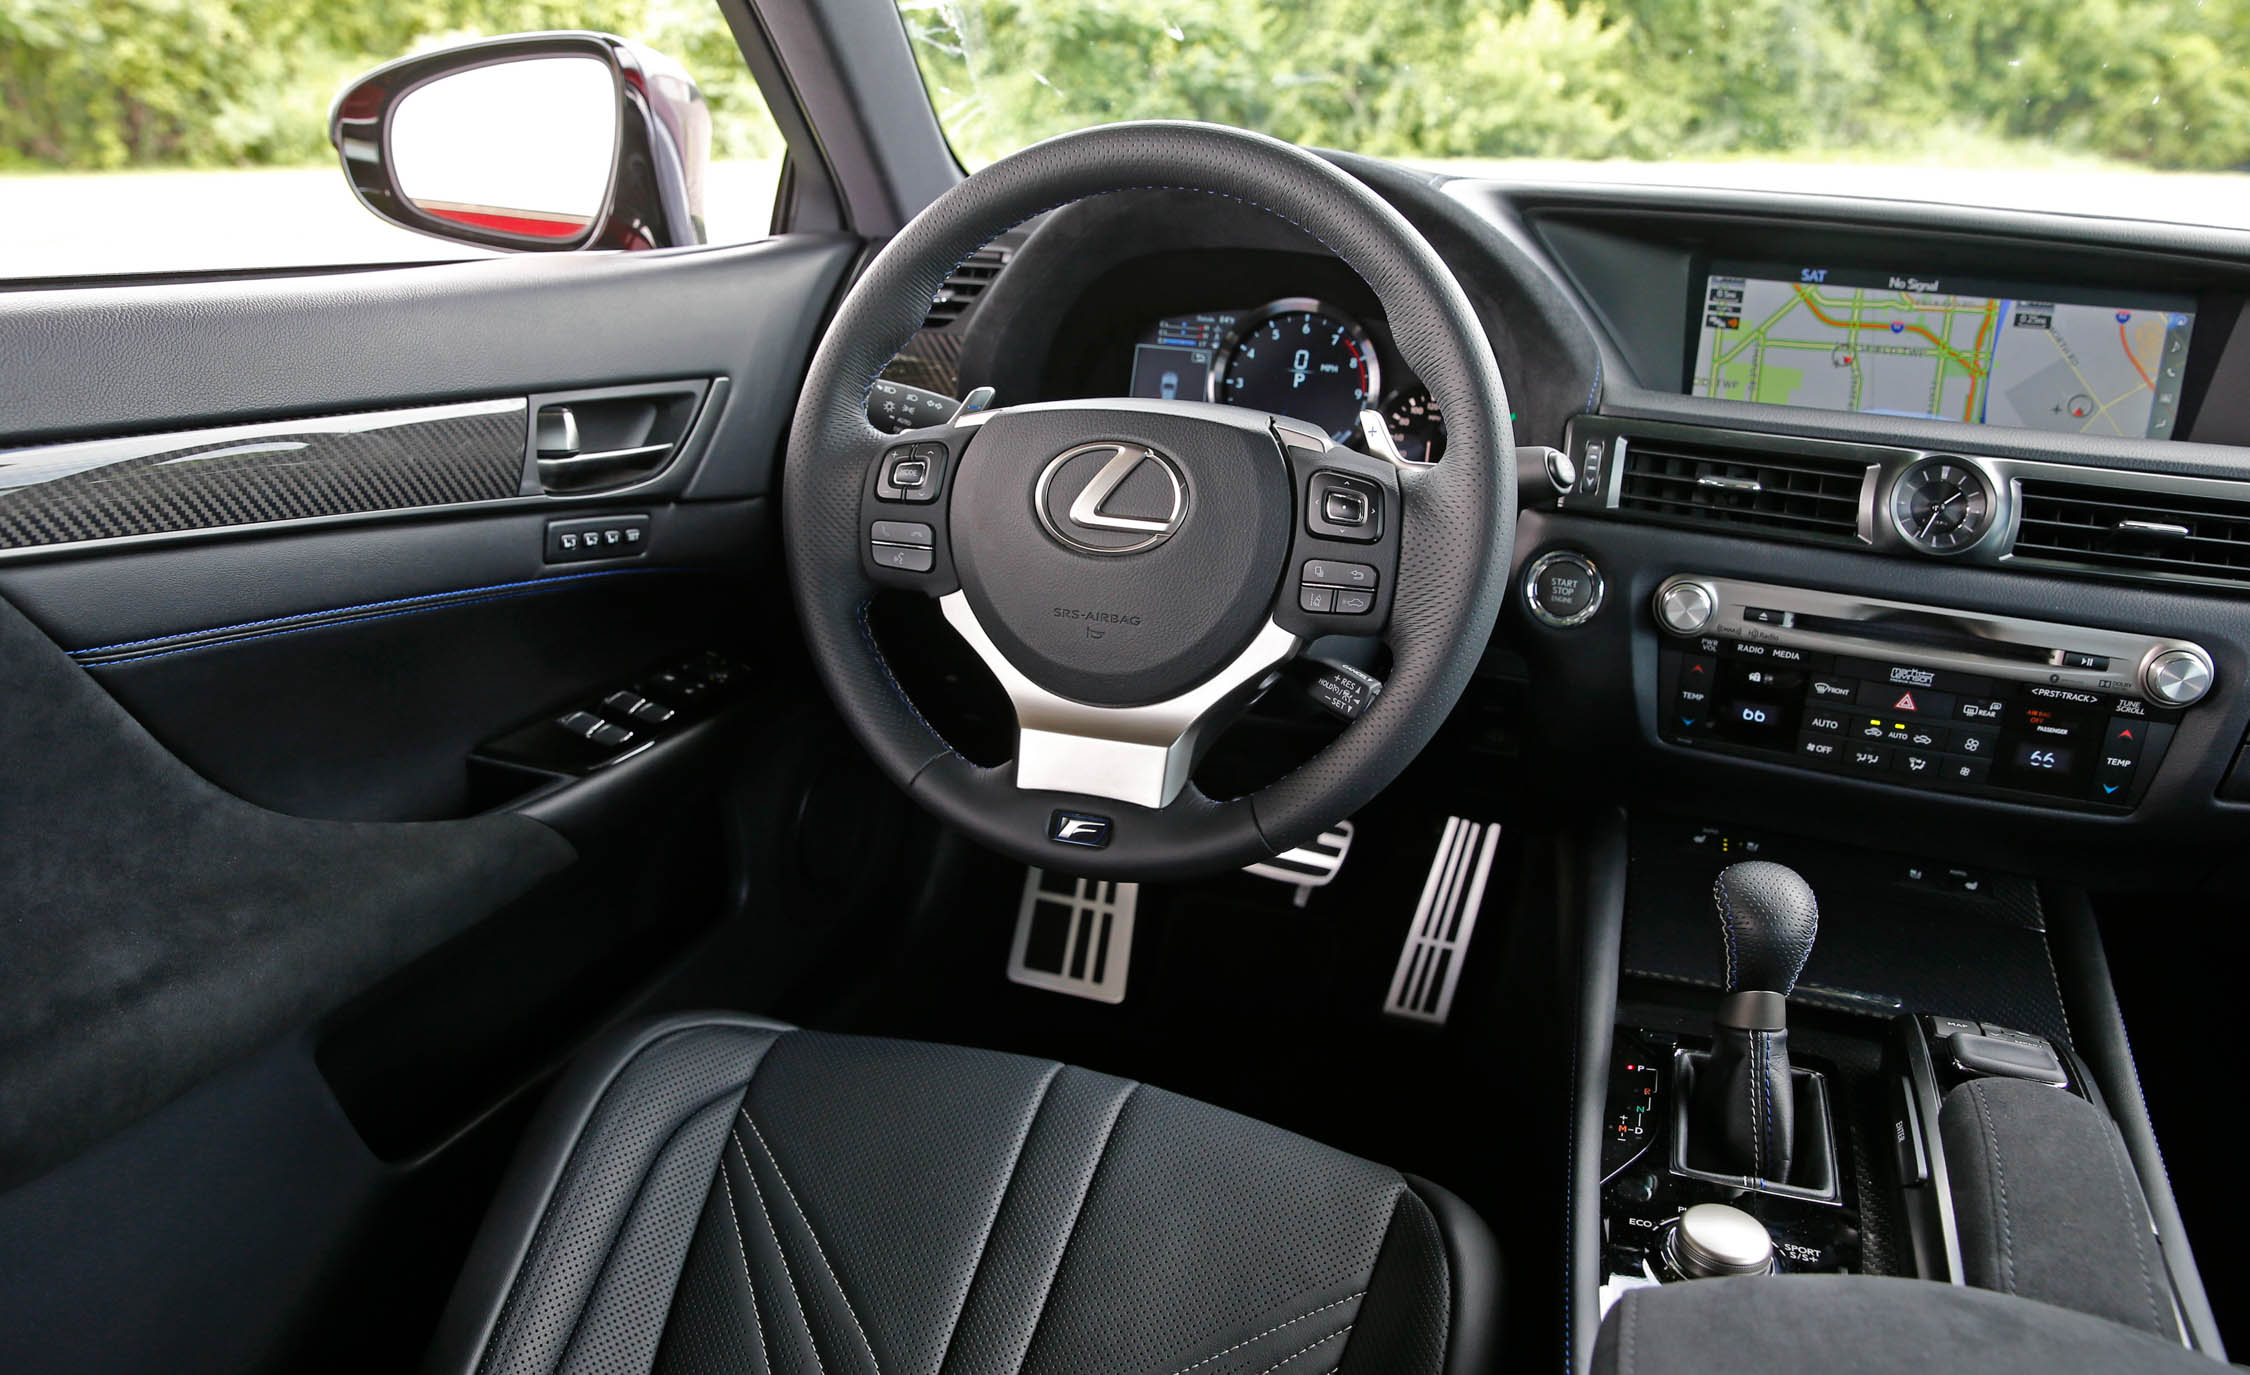 2016 Lexus Gs F Interior Cockpit (Photo 15 of 20)